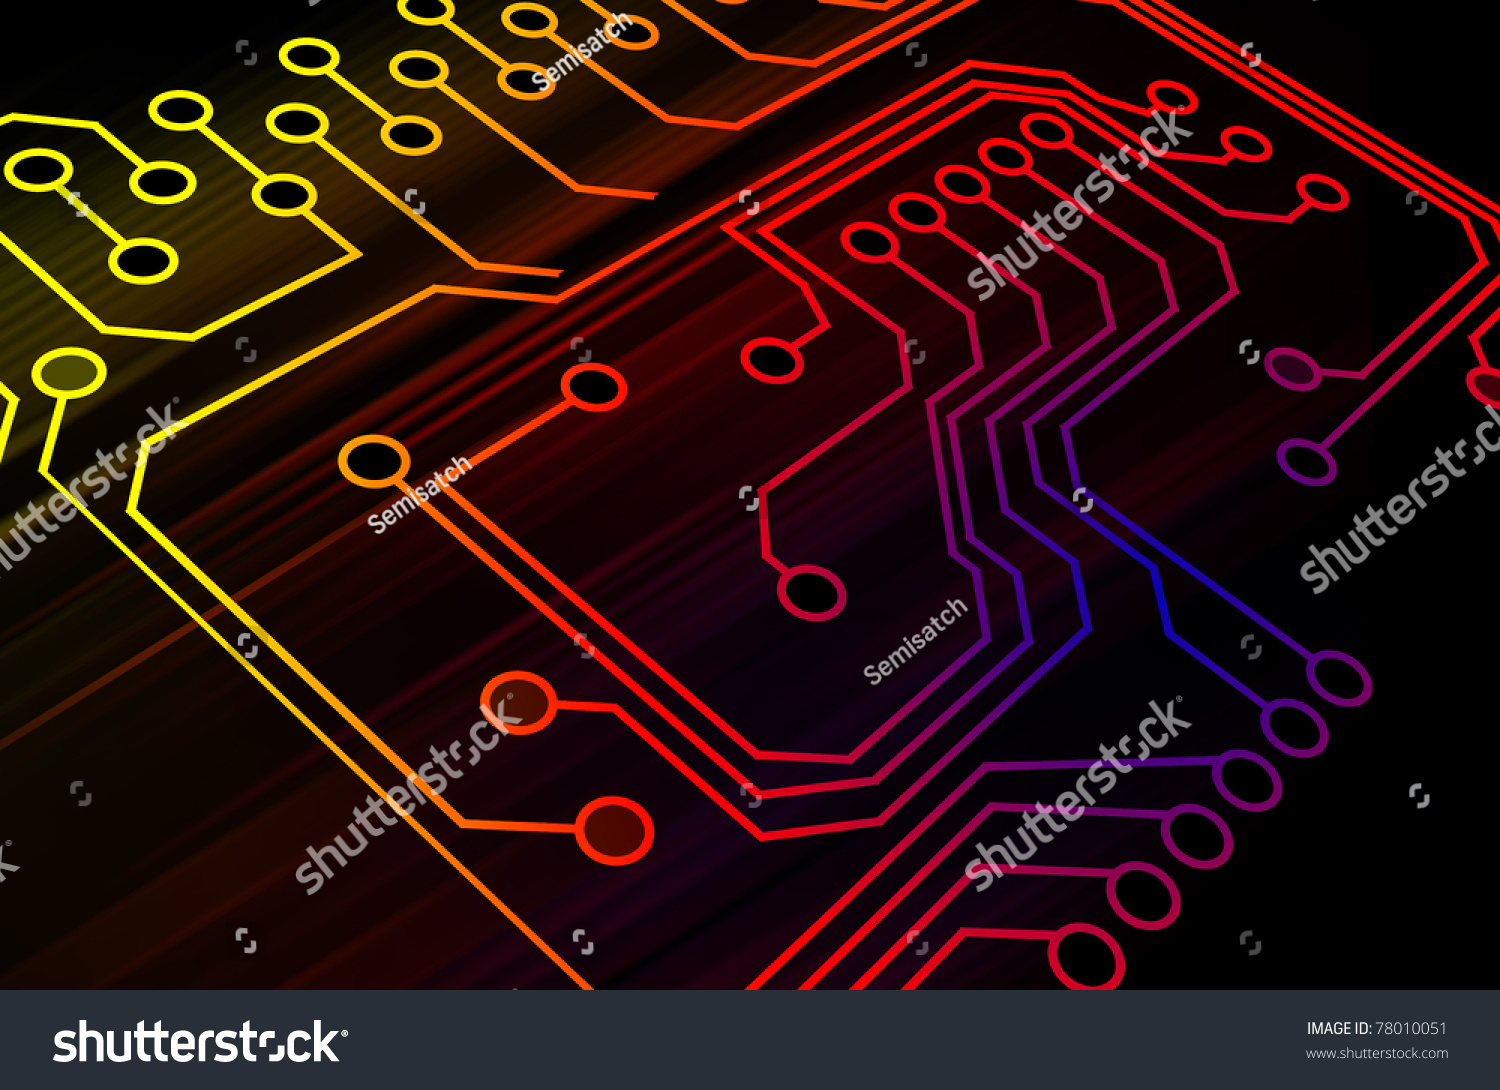 Microchip Background Stock Photo 78010051 : Shutterstock